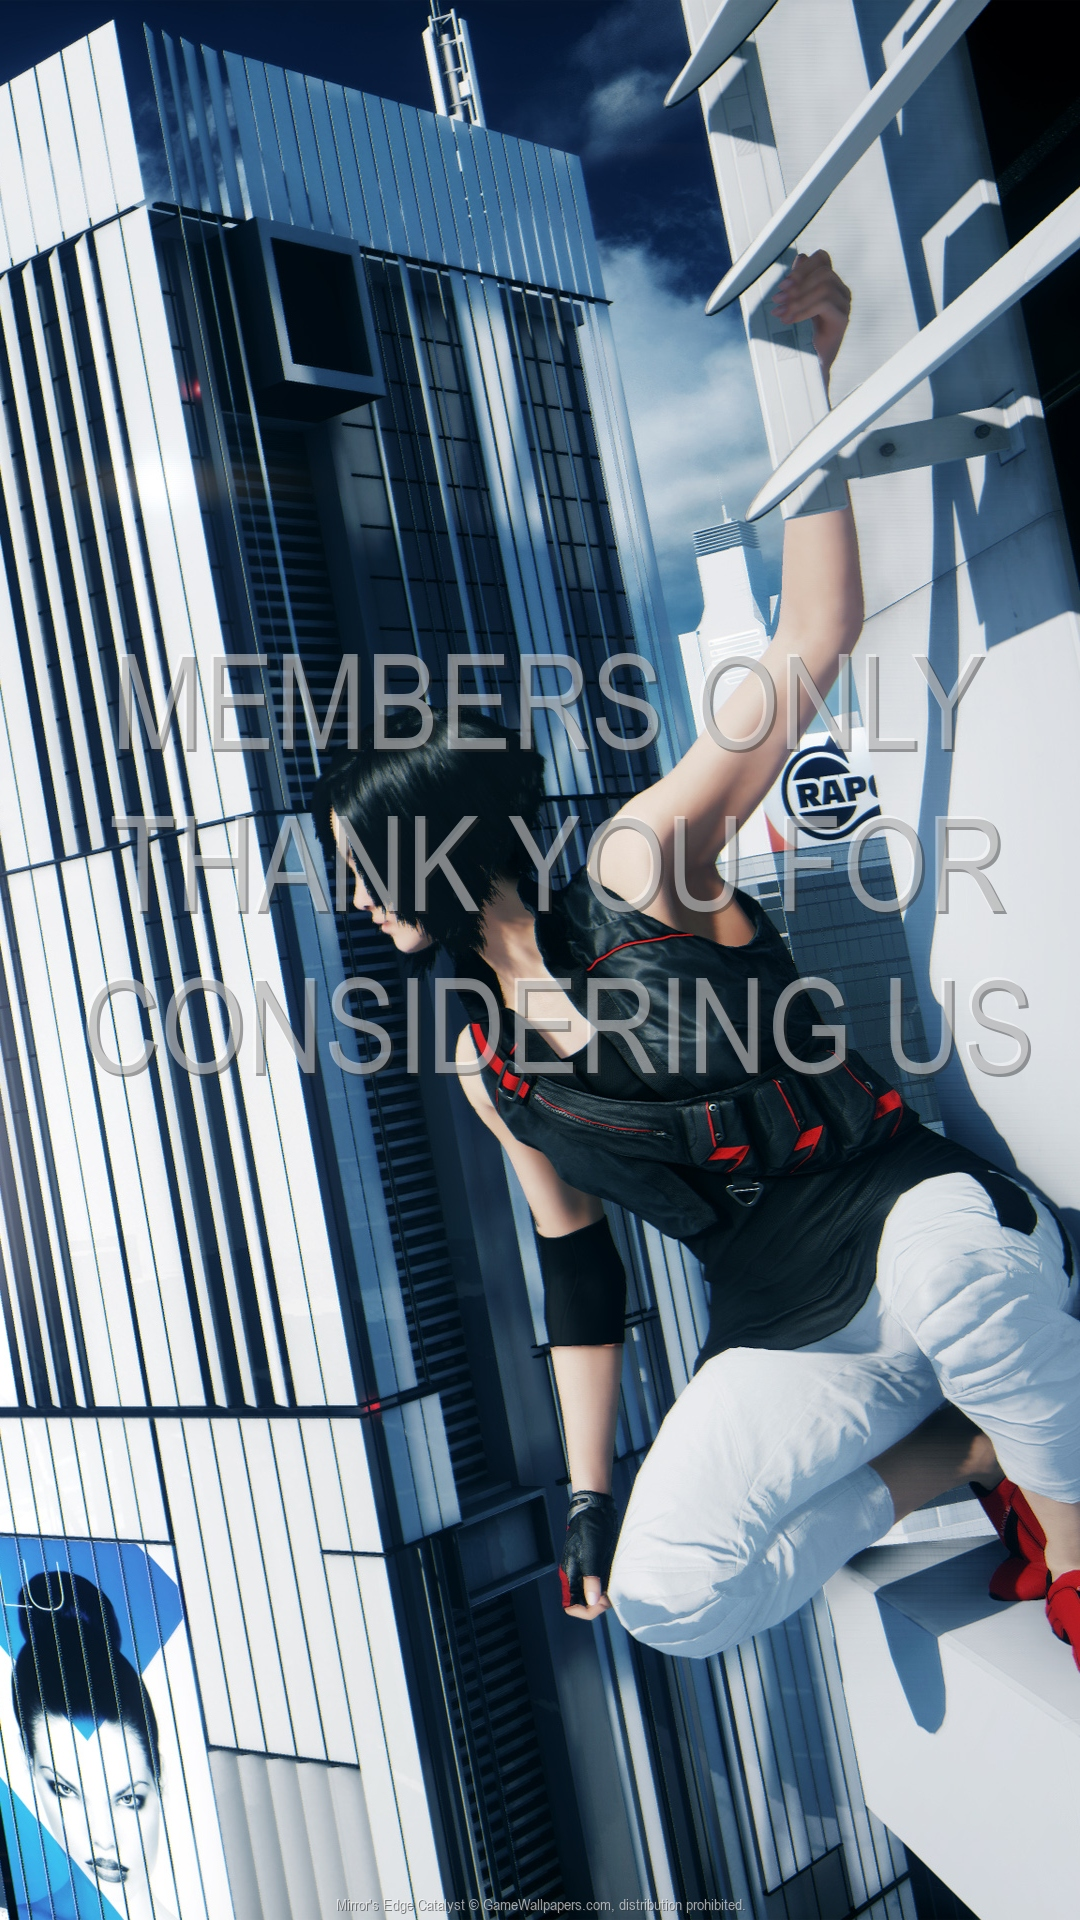 Mirror's Edge: Catalyst 1920x1080 Handy Hintergrundbild 01